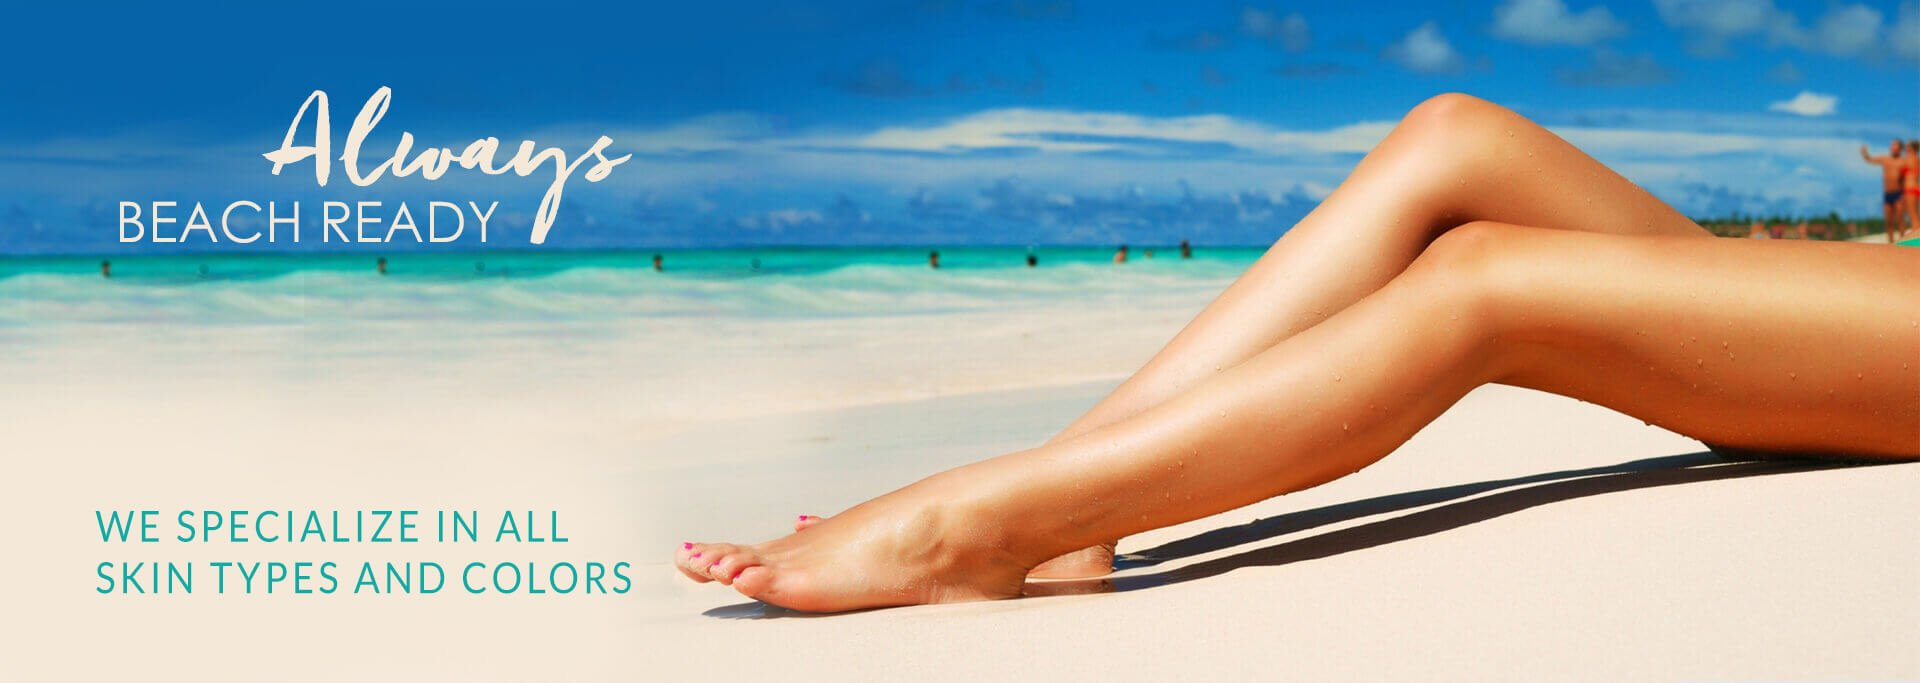 Tampa Laser Hair Removal Cost Info Arviv Medical Aesthetics